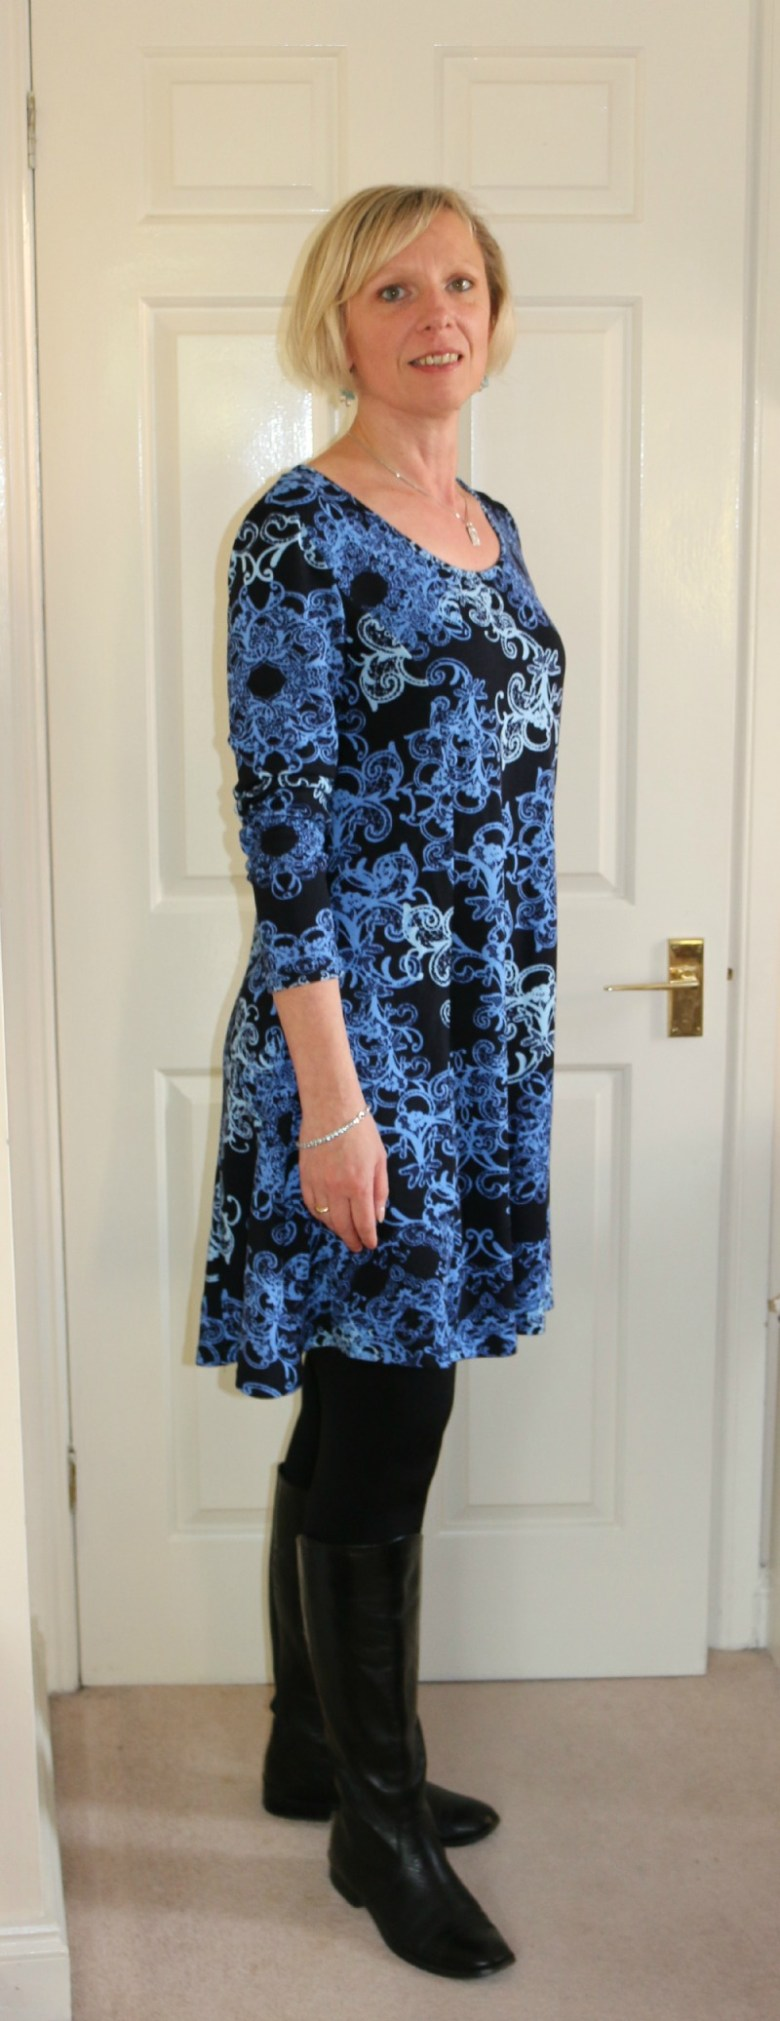 Dressing the part with House of Fraser